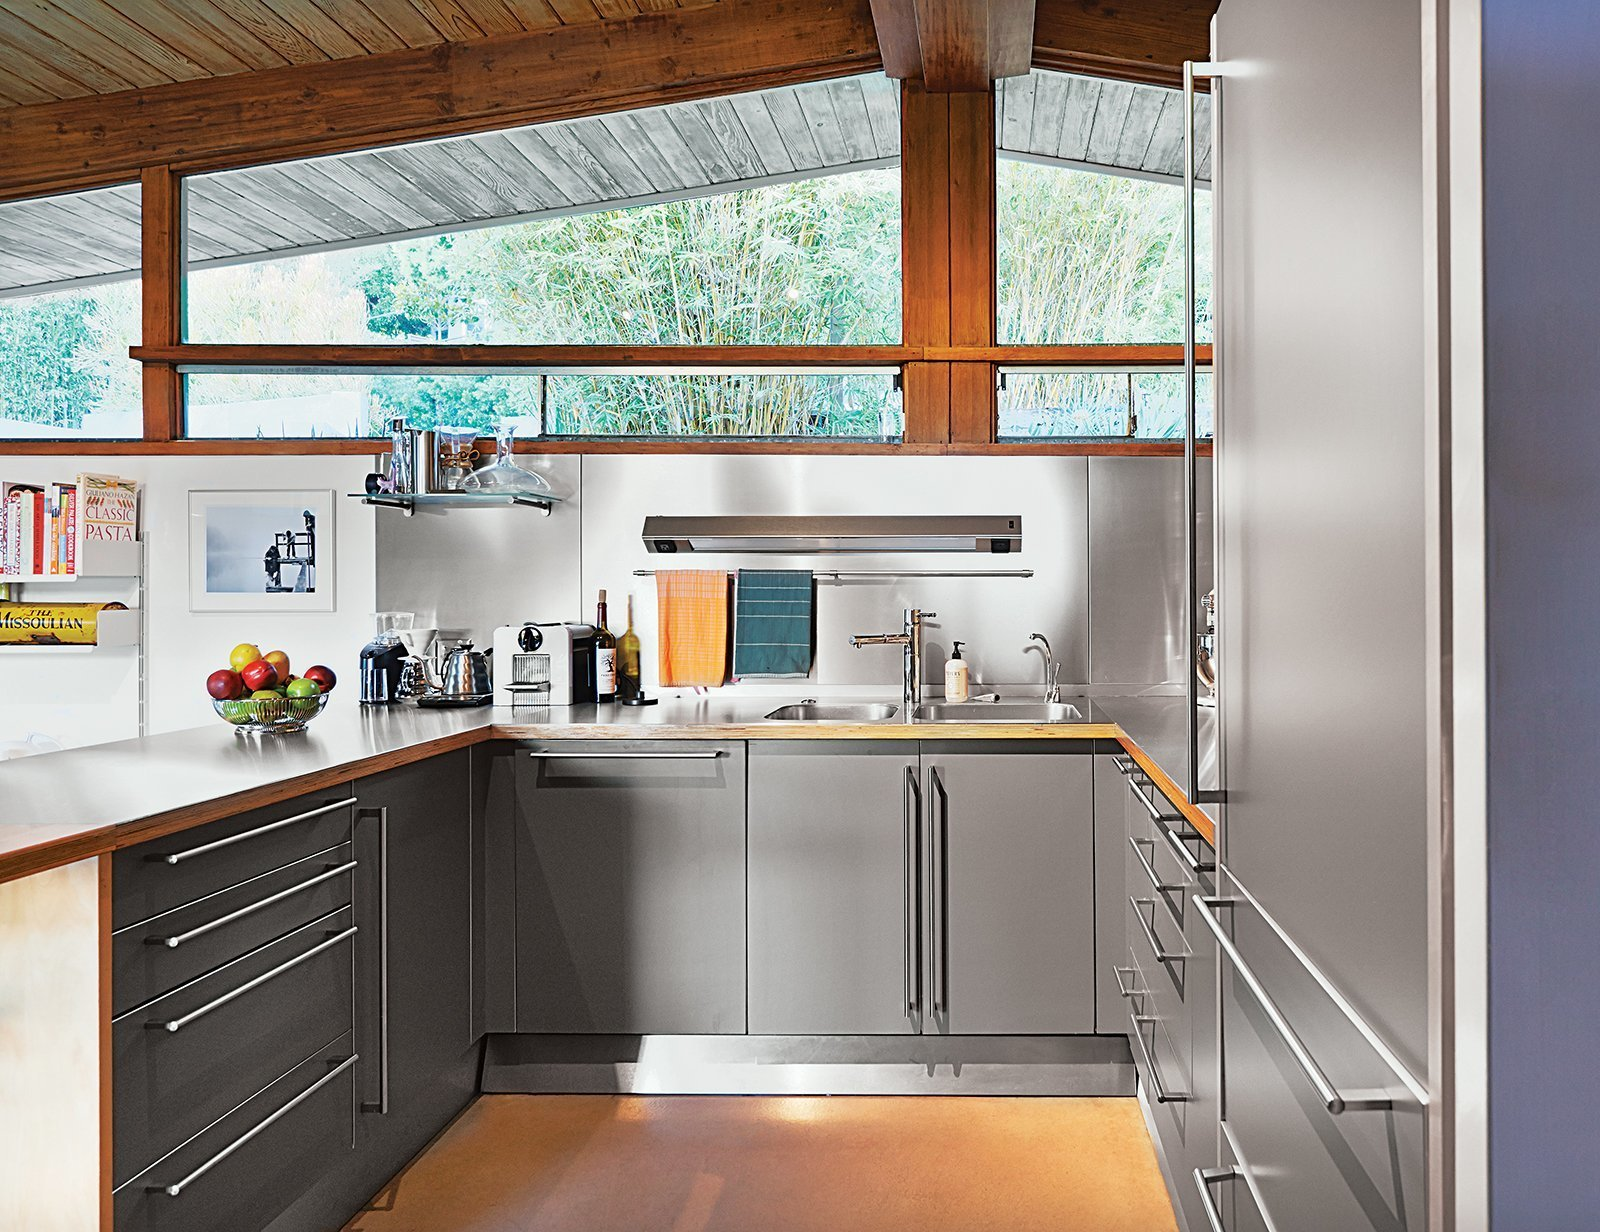 Kitchen wood counter metal cabinet metal backsplashe and drop in sink stainless